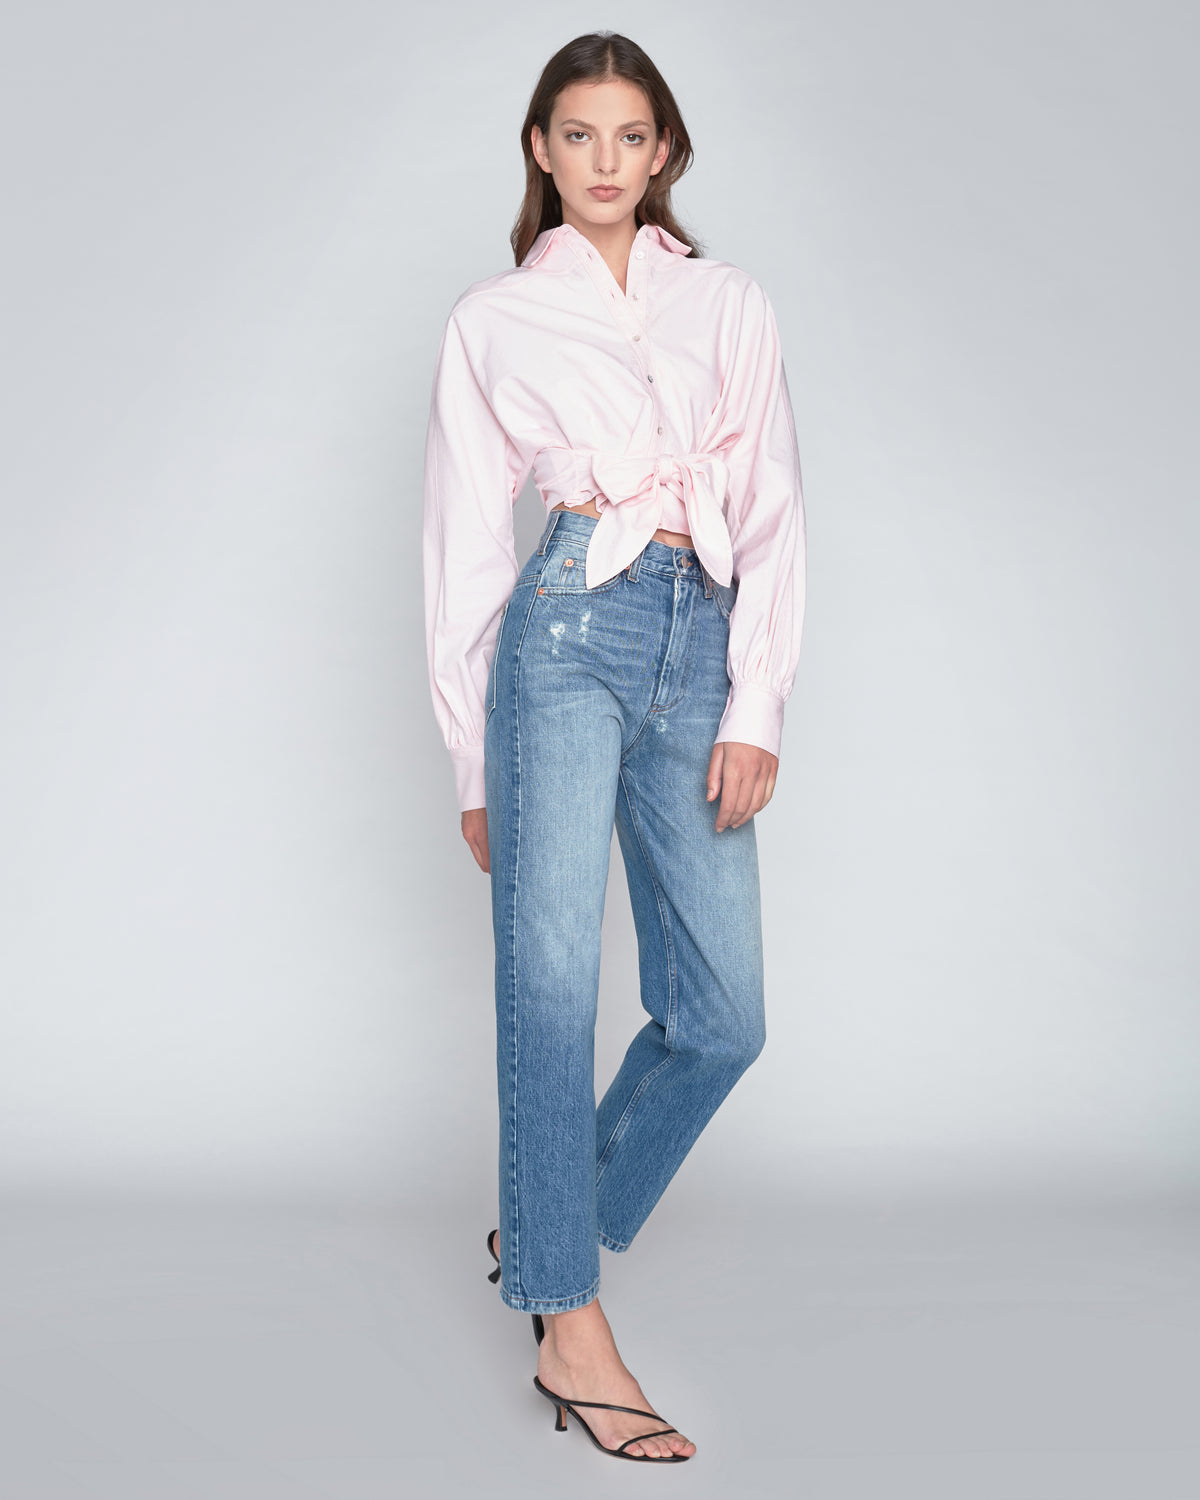 Emmerson Oxford Shirt in Pink